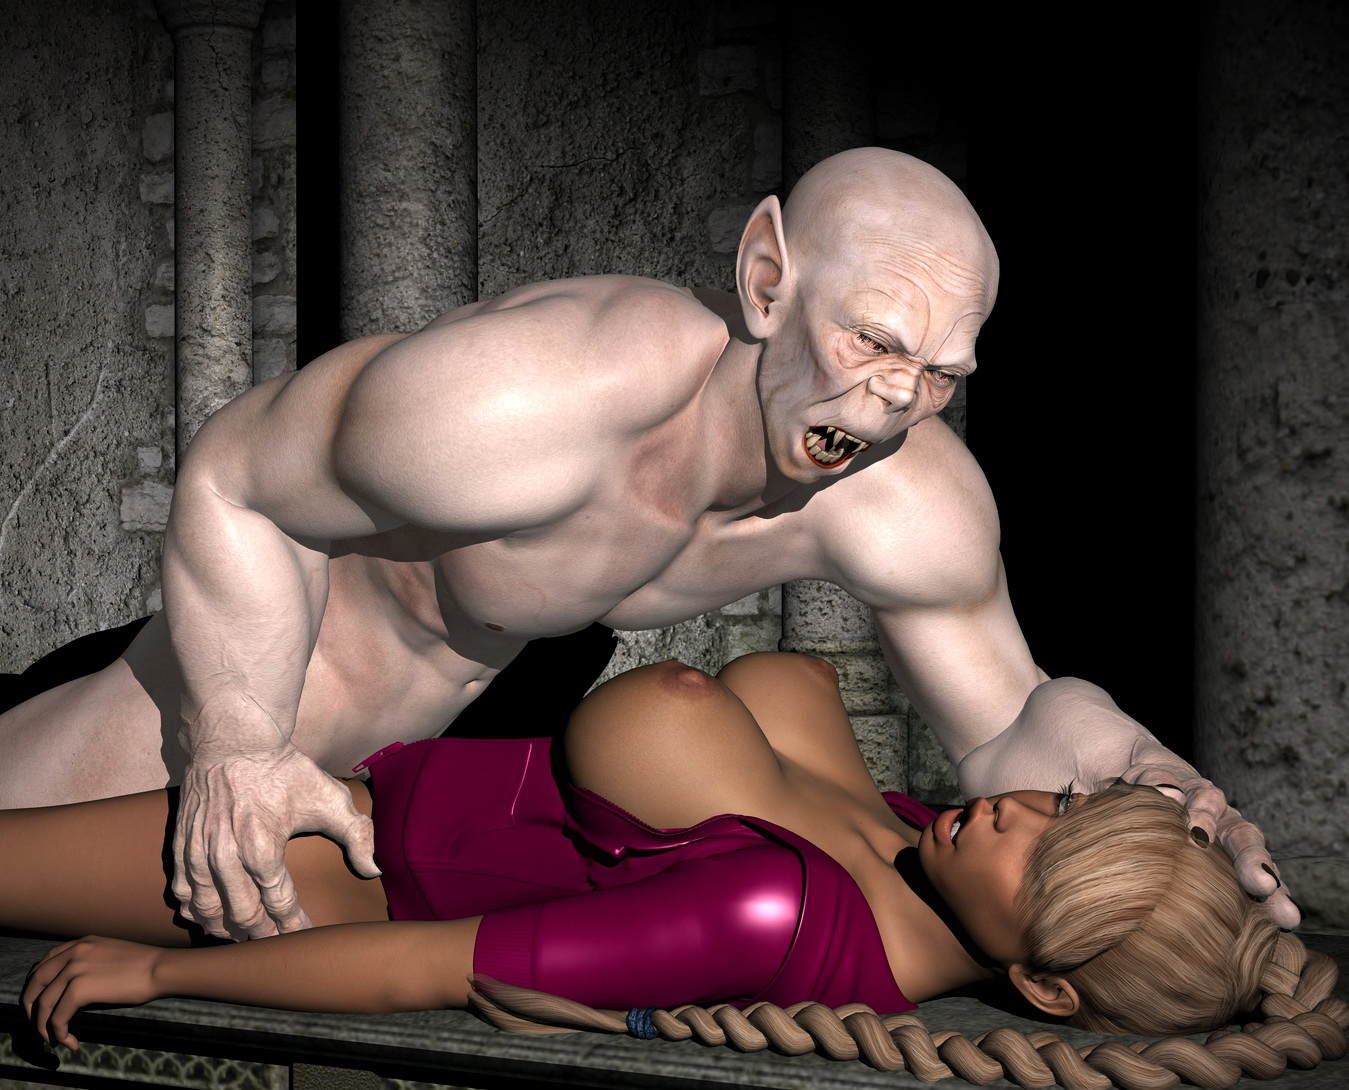 Download ghoul sex squad 3gp sex petite girl